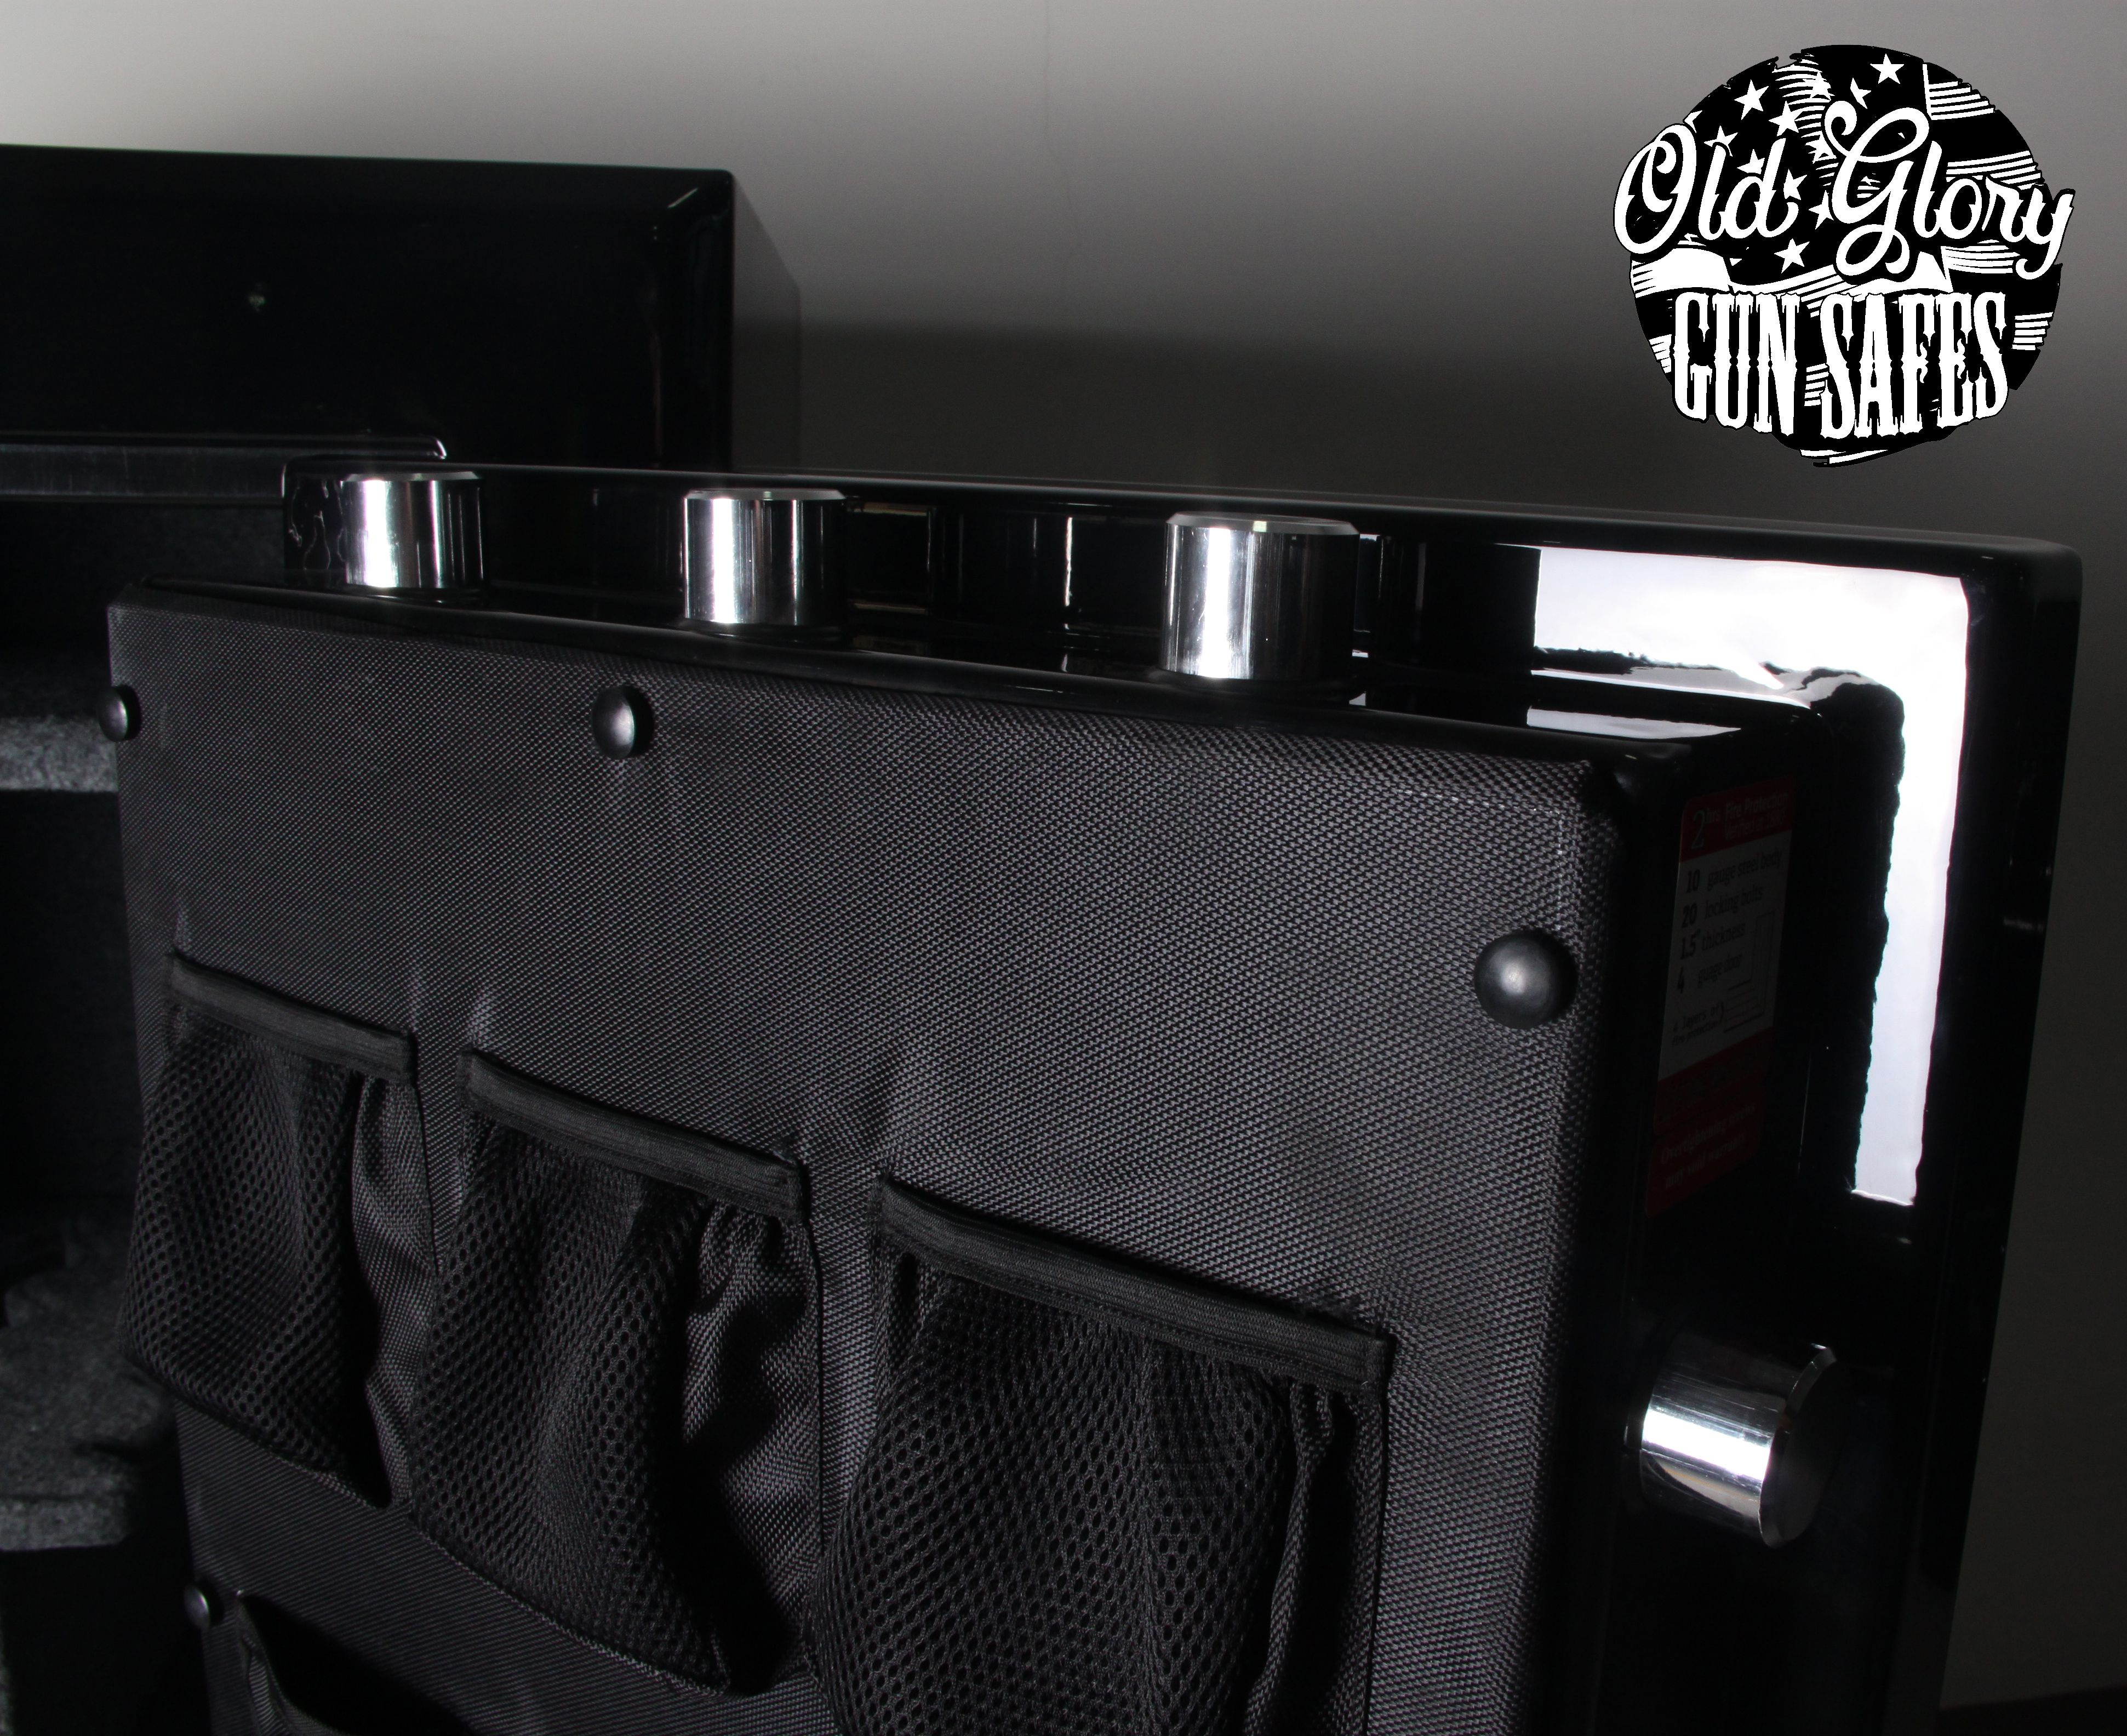 Pin on Gun Safes for sale